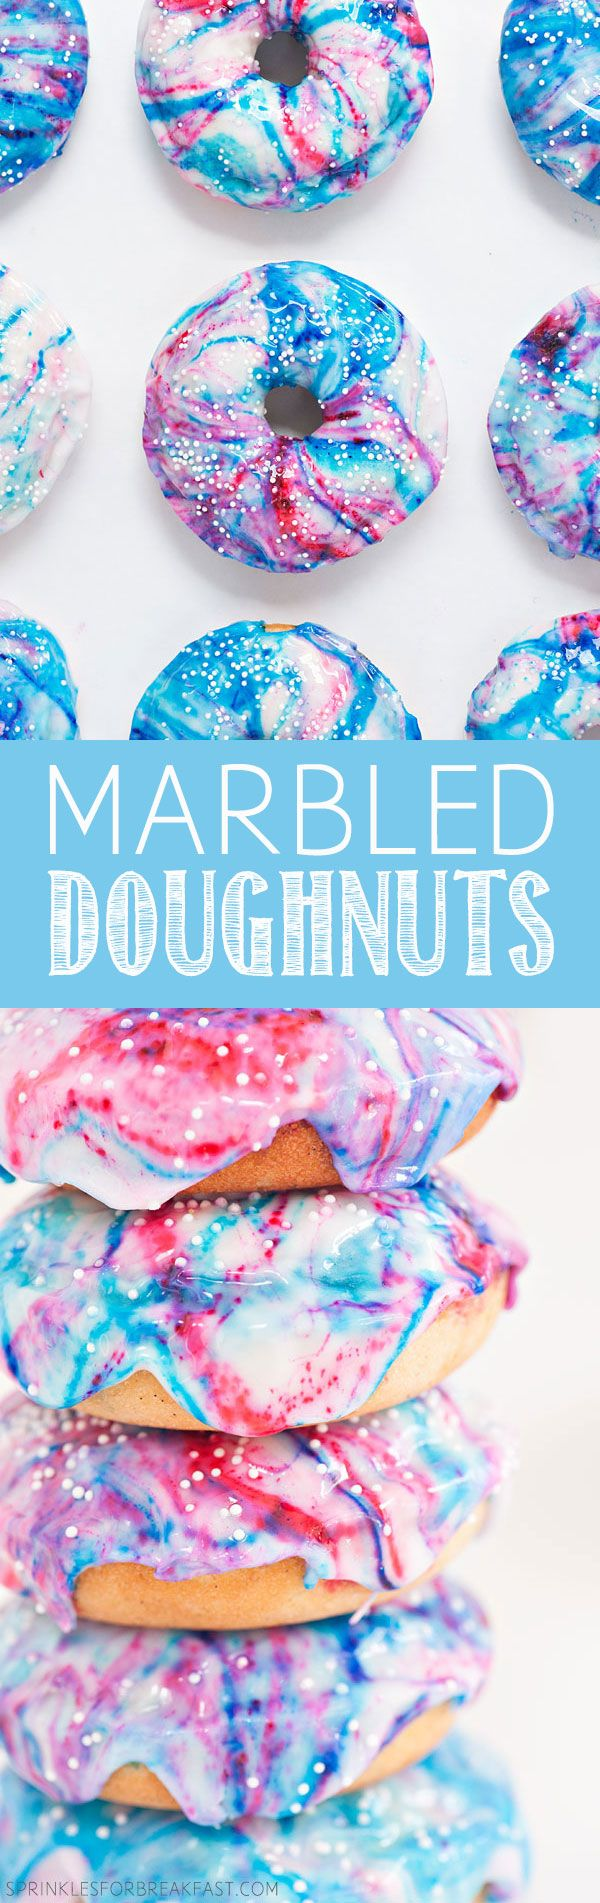 Marbled Doughnuts | Sprinkles for Breakfast